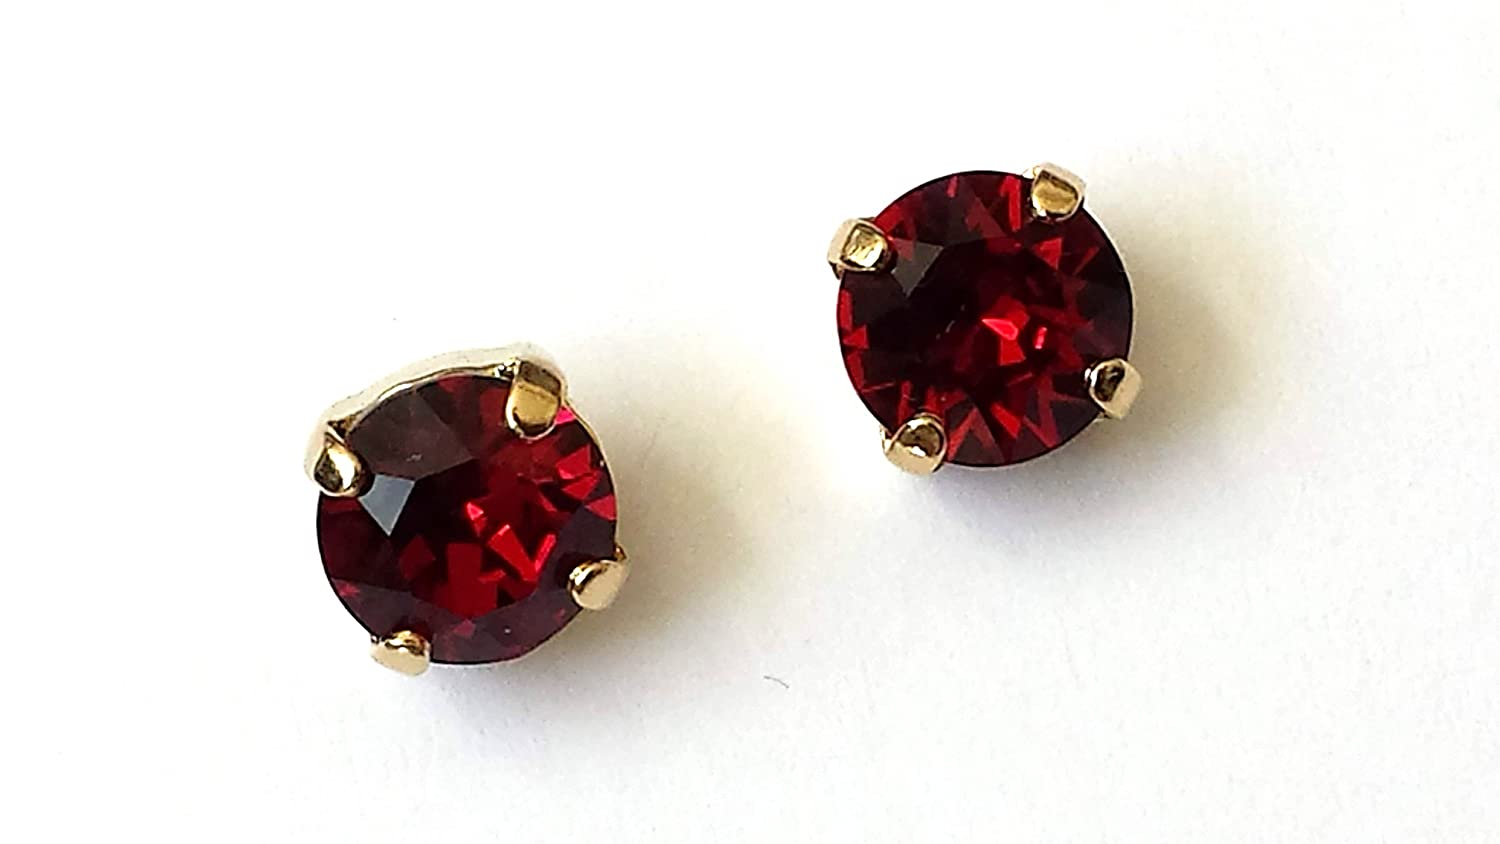 wholesale dealer great deals on fashion classic style of 2019 Amazon.com: Swarovski Ruby Crystal Stud Earrings Gold Post ...